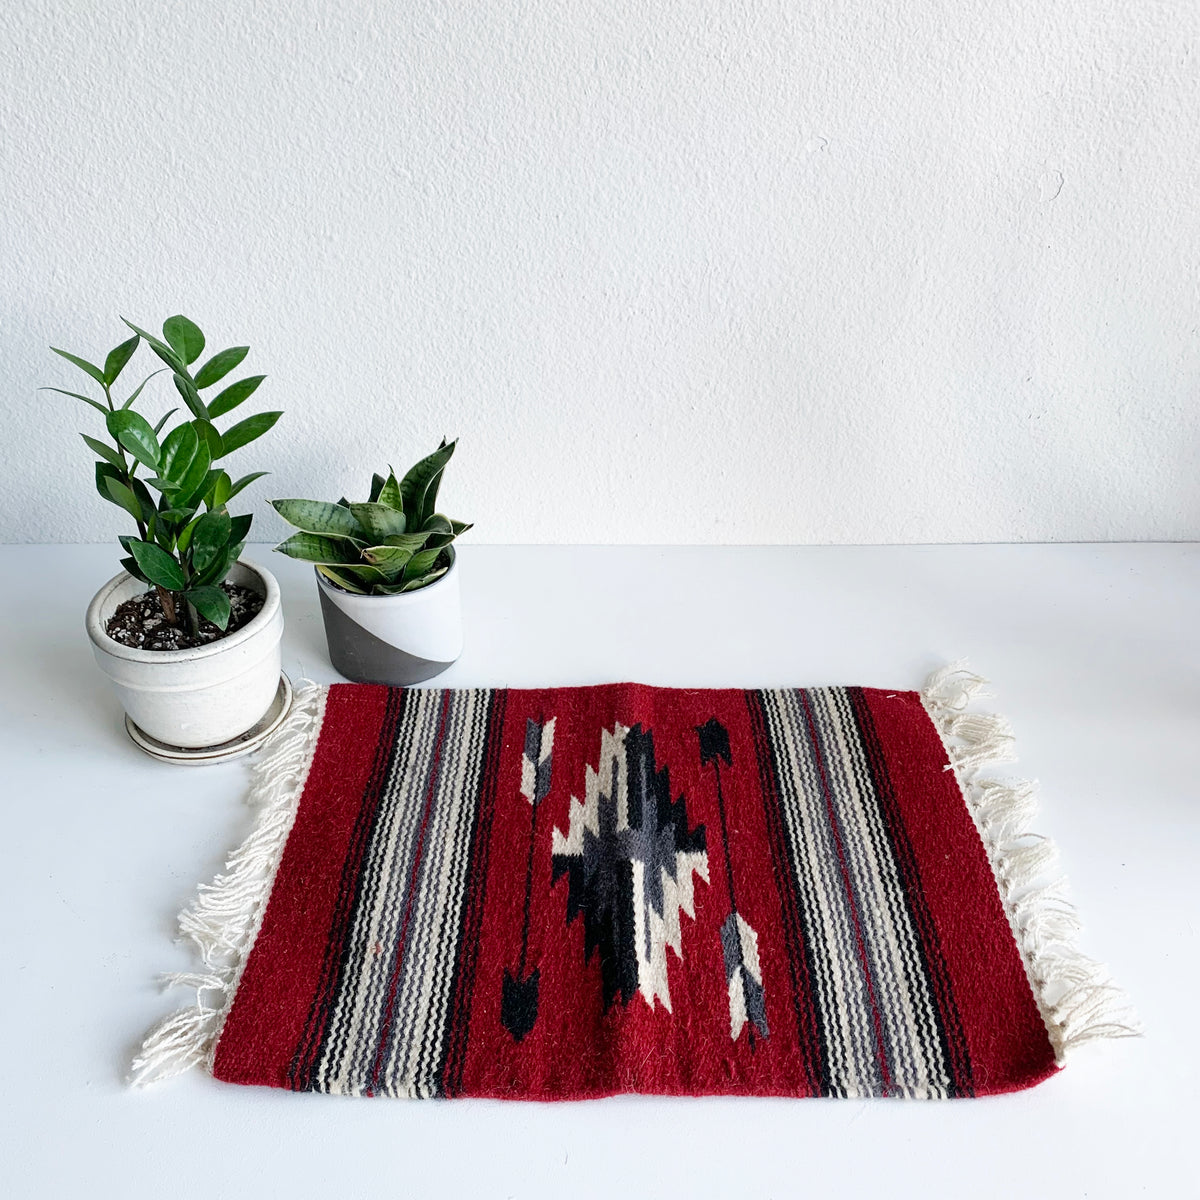 Medium Woven Mat in Black and Red